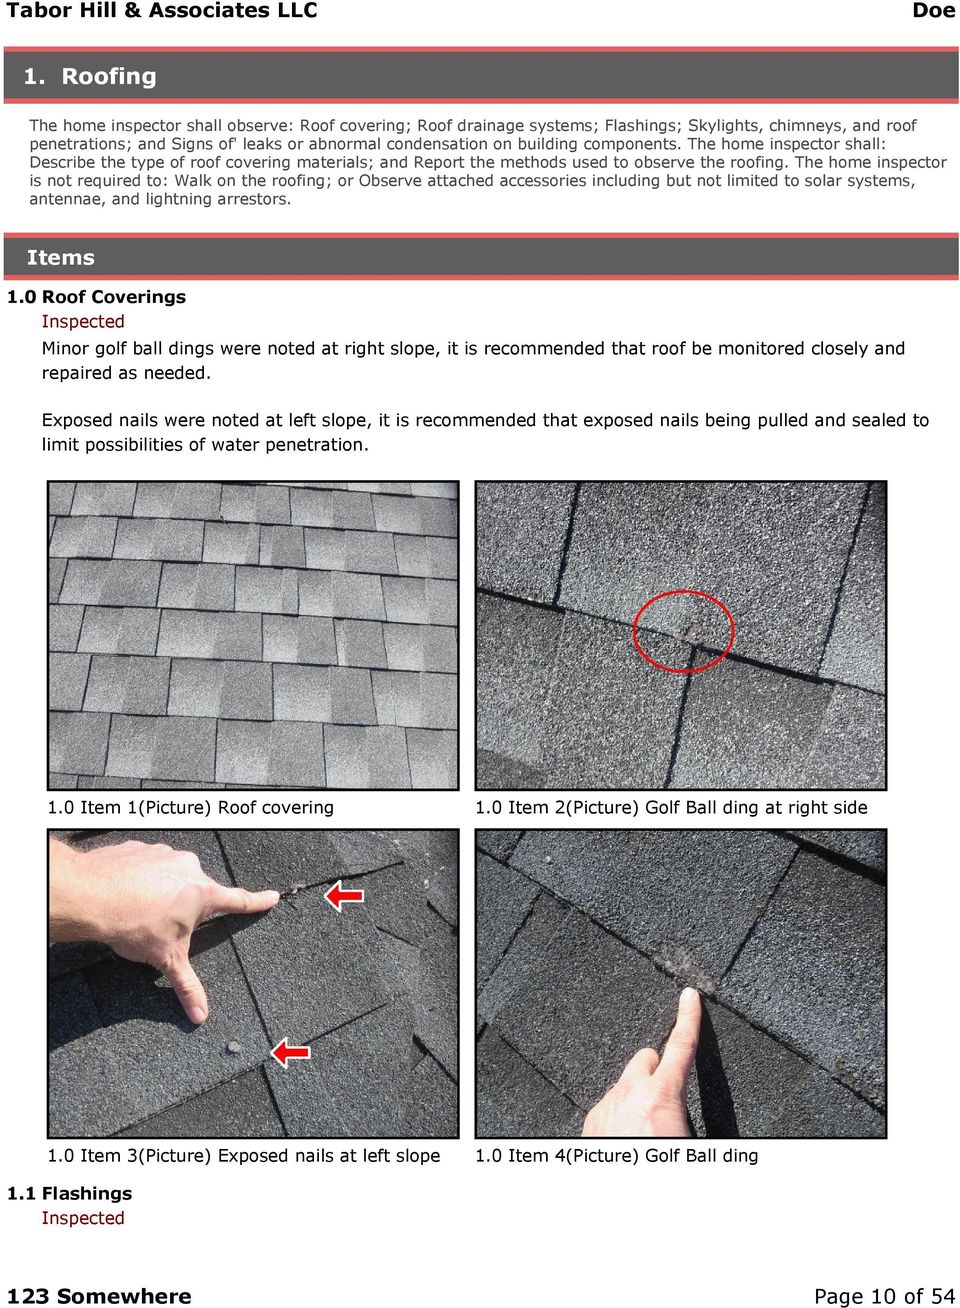 The home inspector is not required to: Walk on the roofing; or Observe attached accessories including but not limited to solar systems, antennae, and lightning arrestors. Items 1.